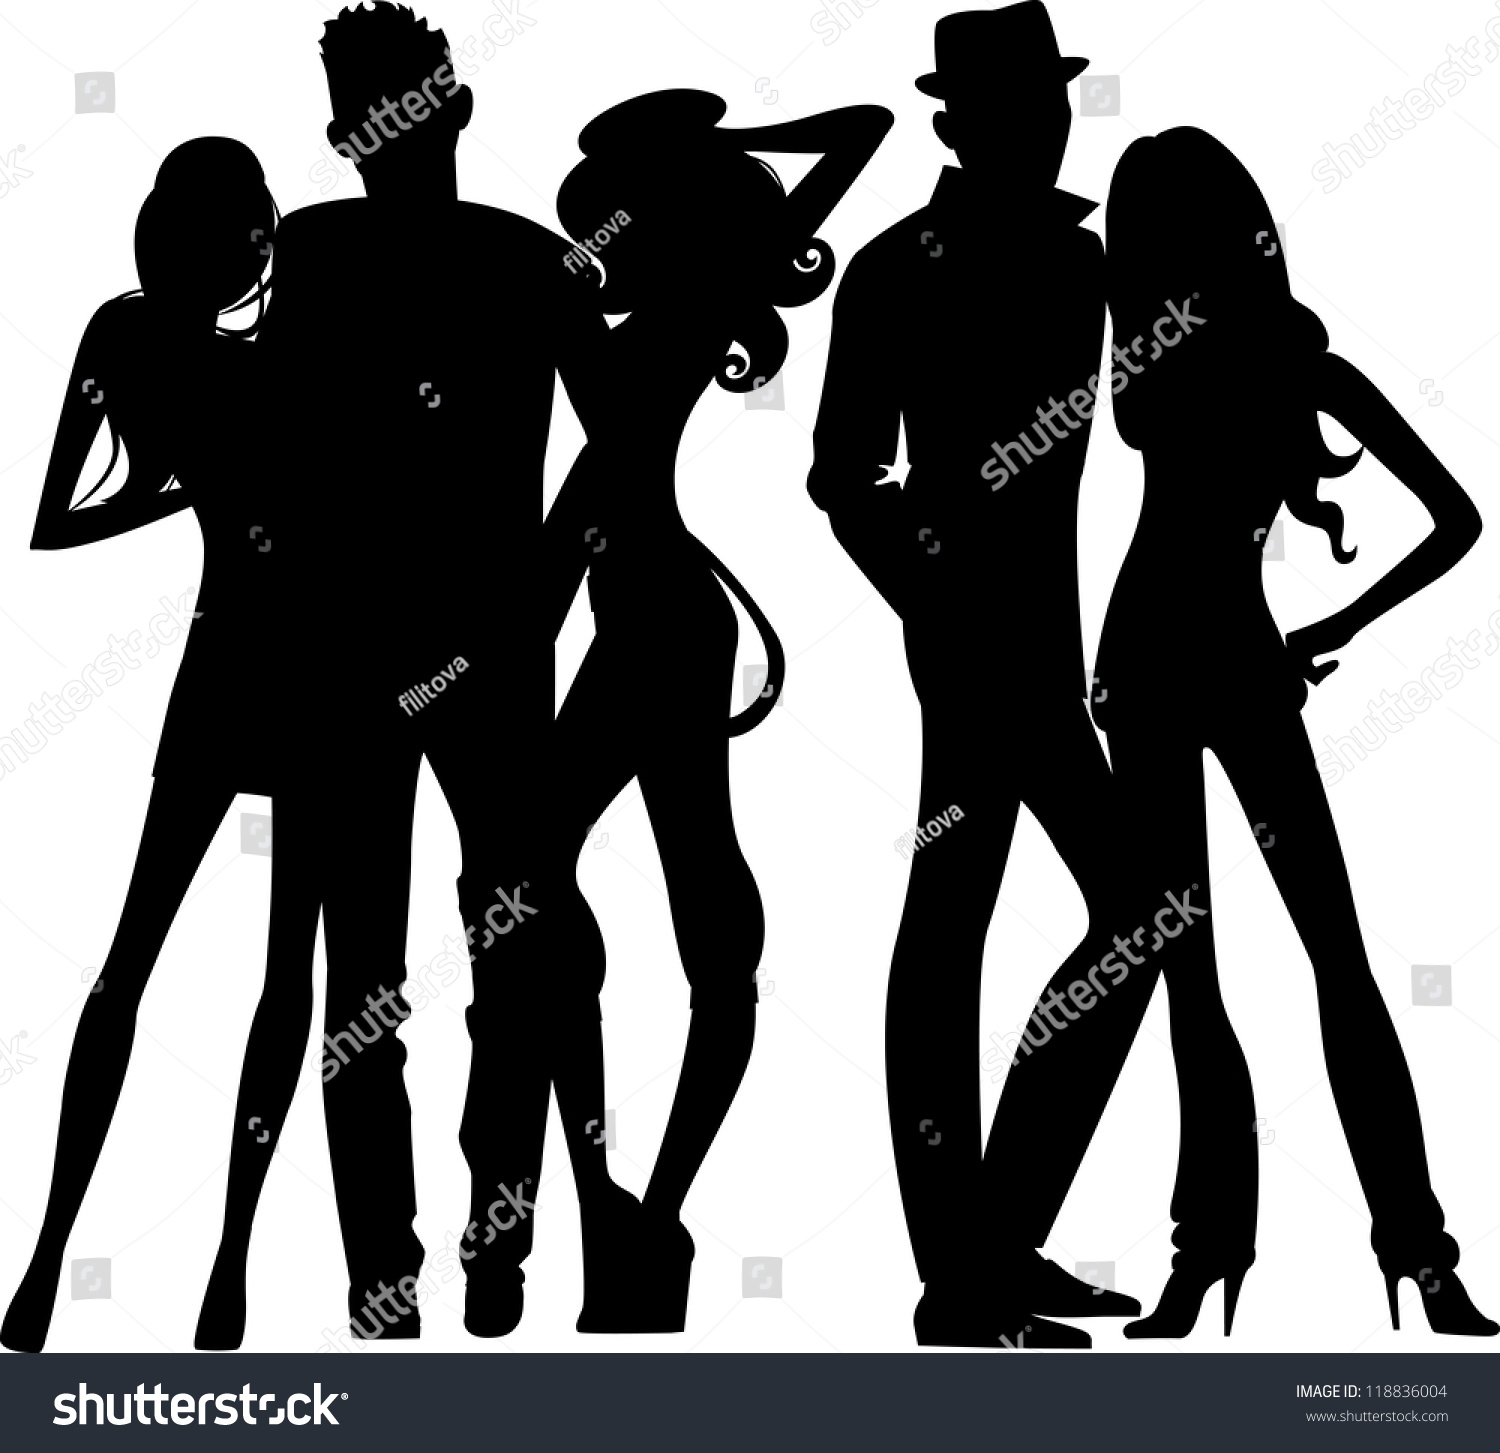 Silhouette Group Young People Stock Vector 118836004 ...